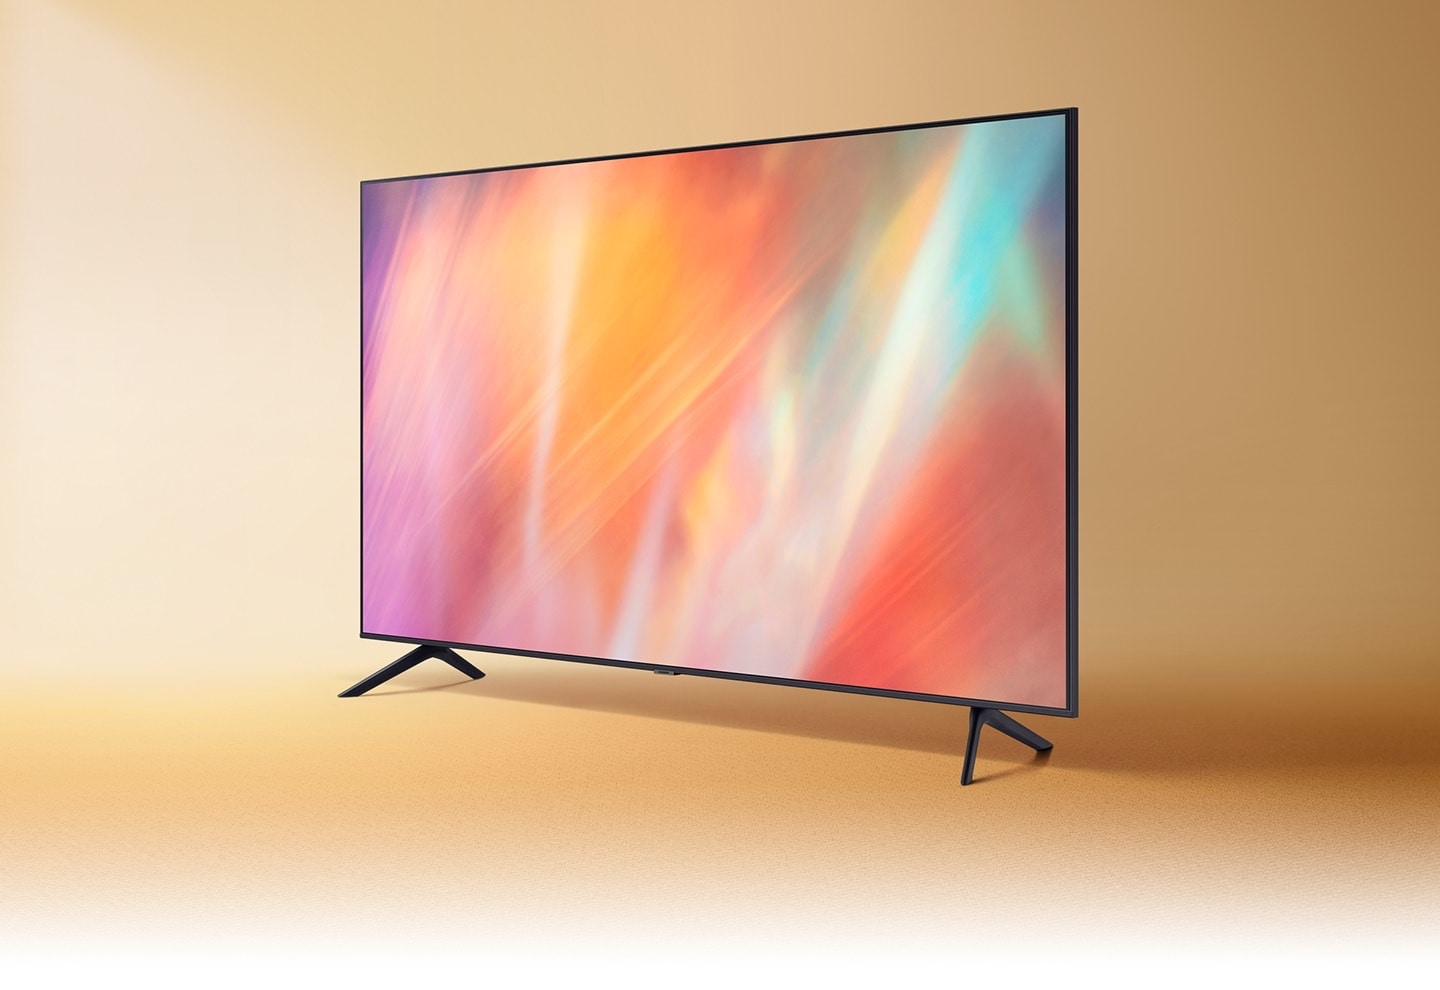 AU7700 displays intricately blended color graphics which demonstrate vivid crystal color.